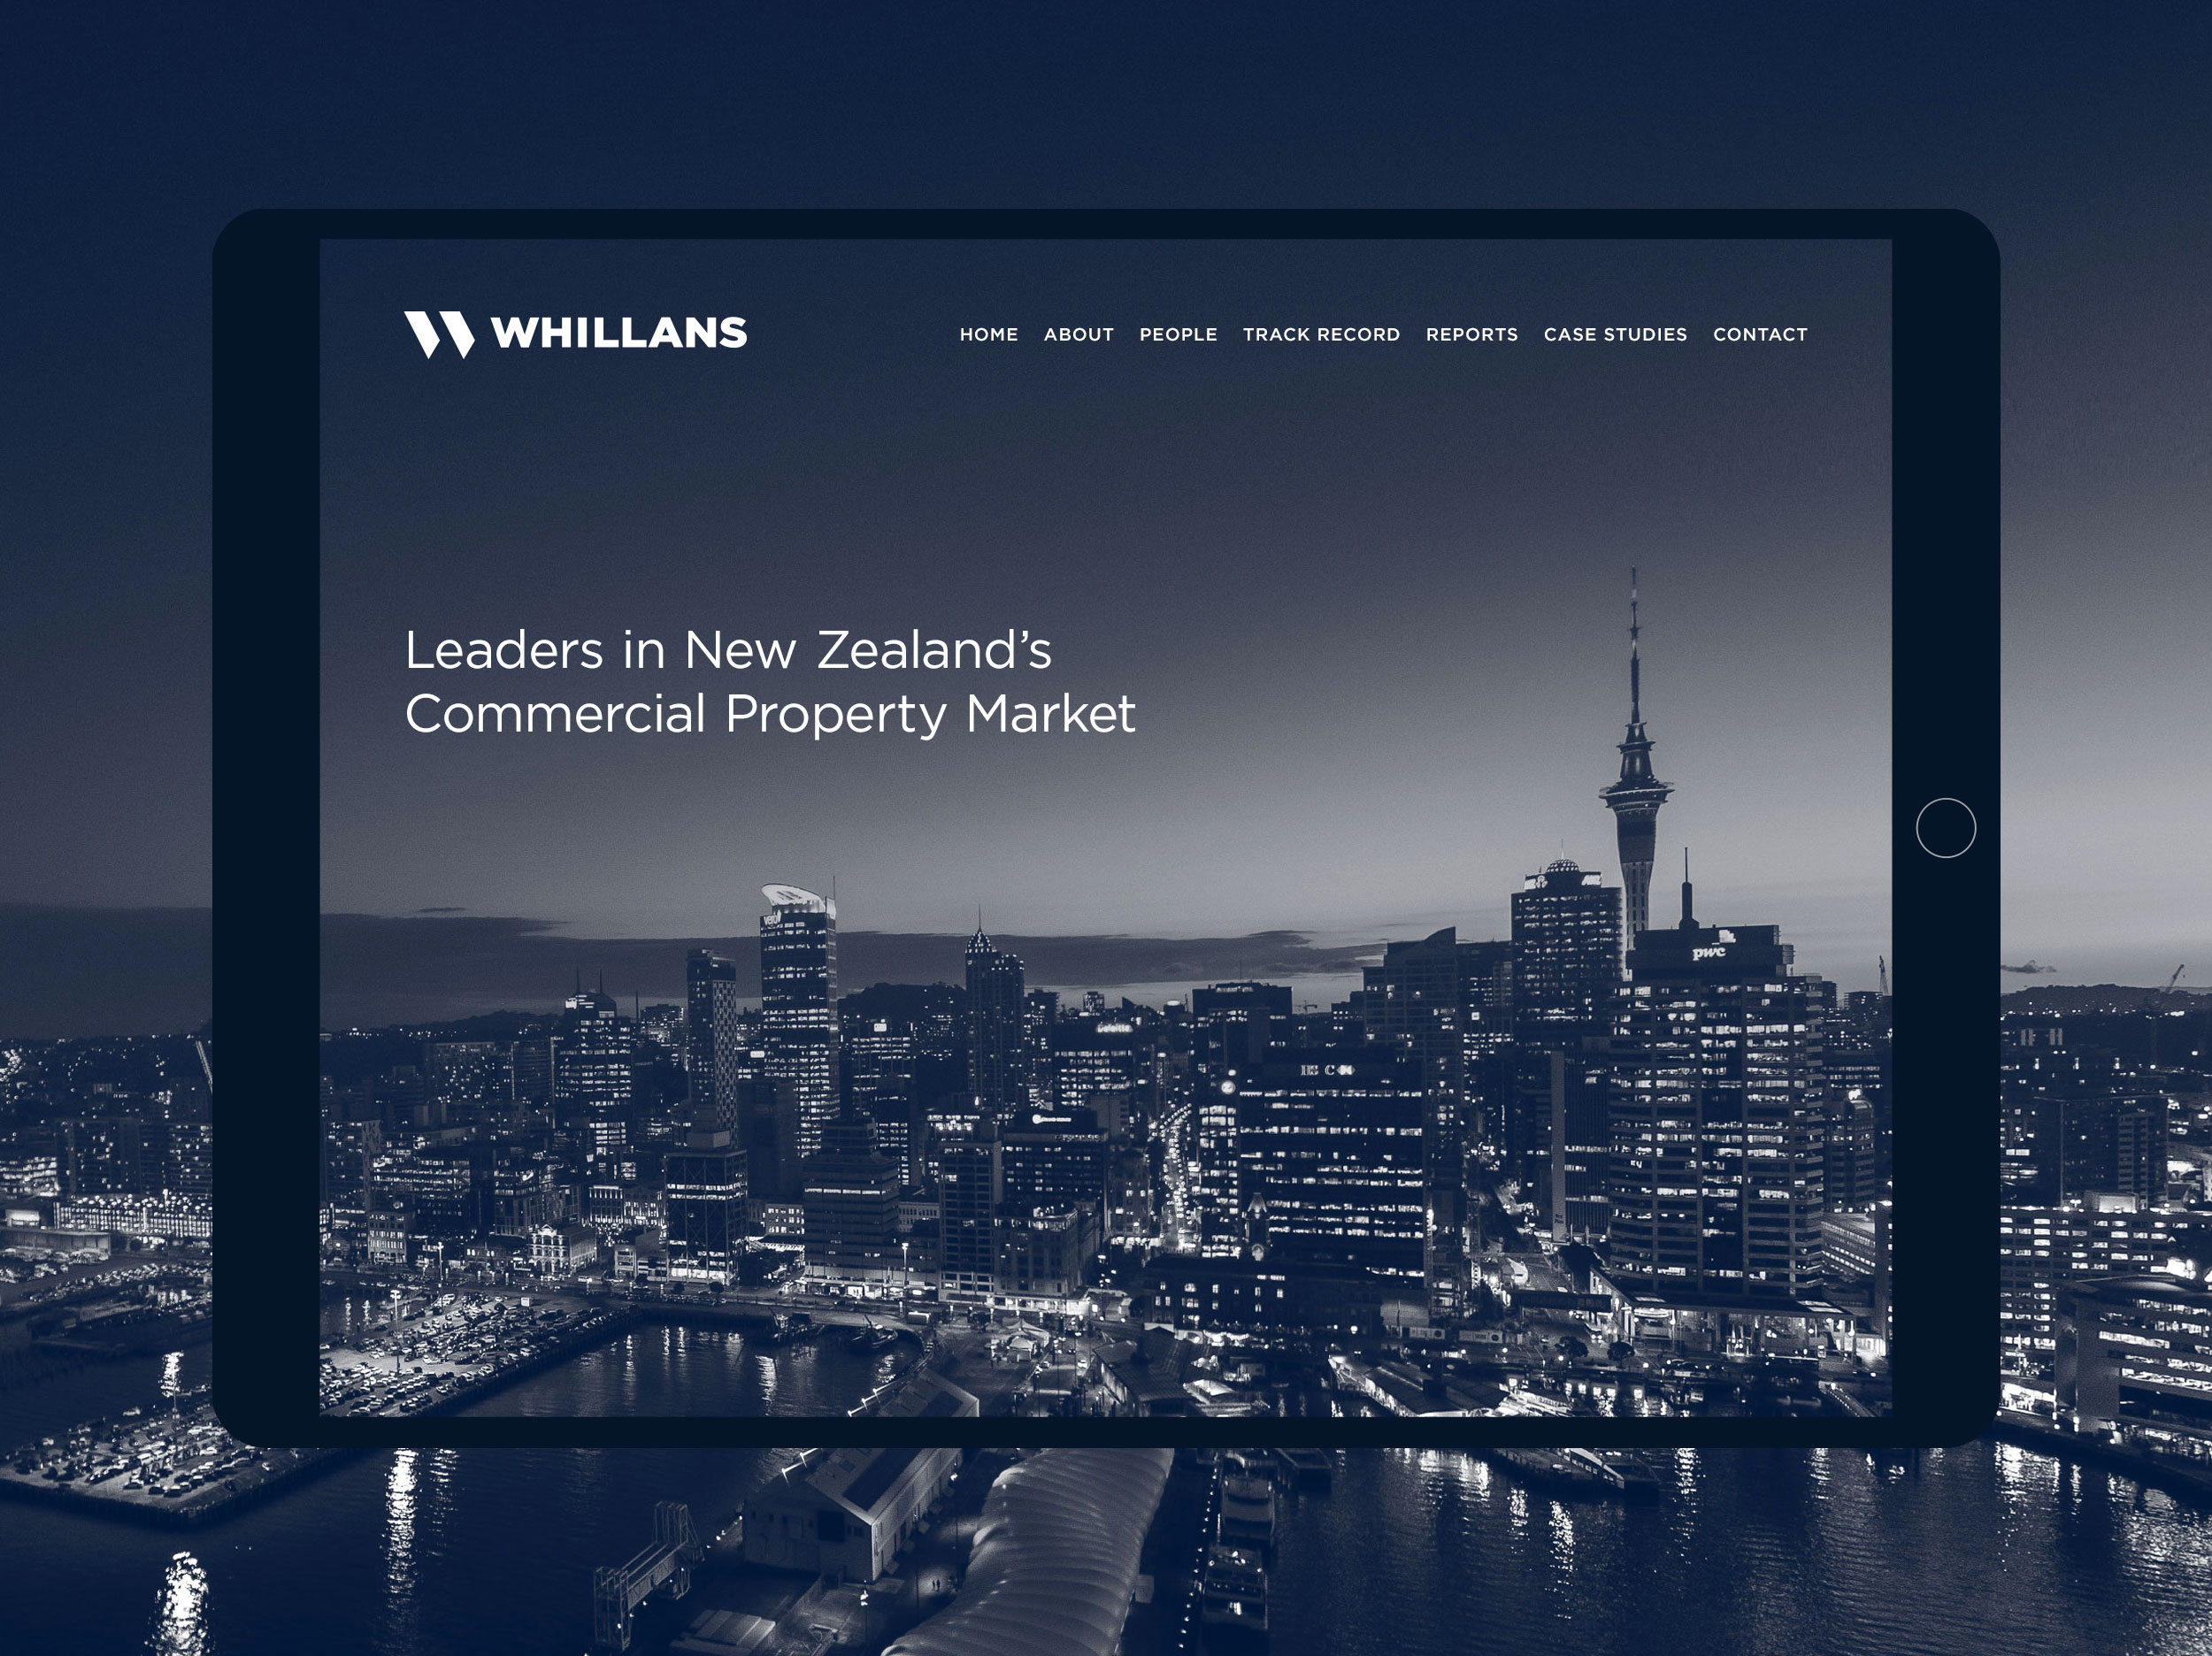 Mobile friendly website for Whillans displayed on a tablet